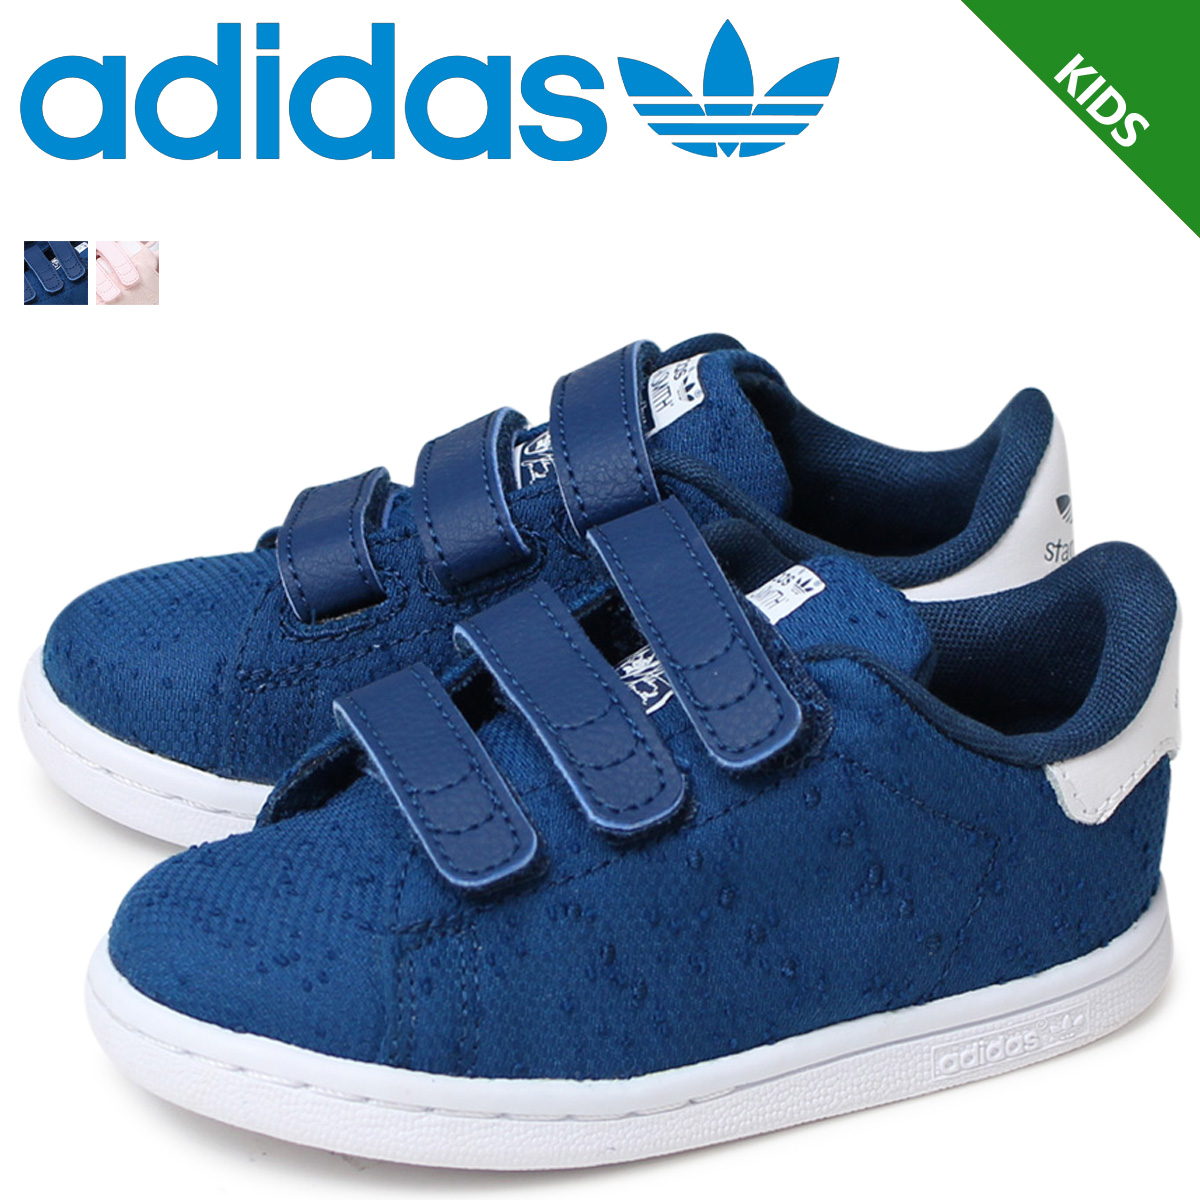 f3d7d391b3ff Adidas originals adidas Originals baby kids STAN SMITH CF I sneakers Stan  Smith CF I M20609 white  8   11 new in stock